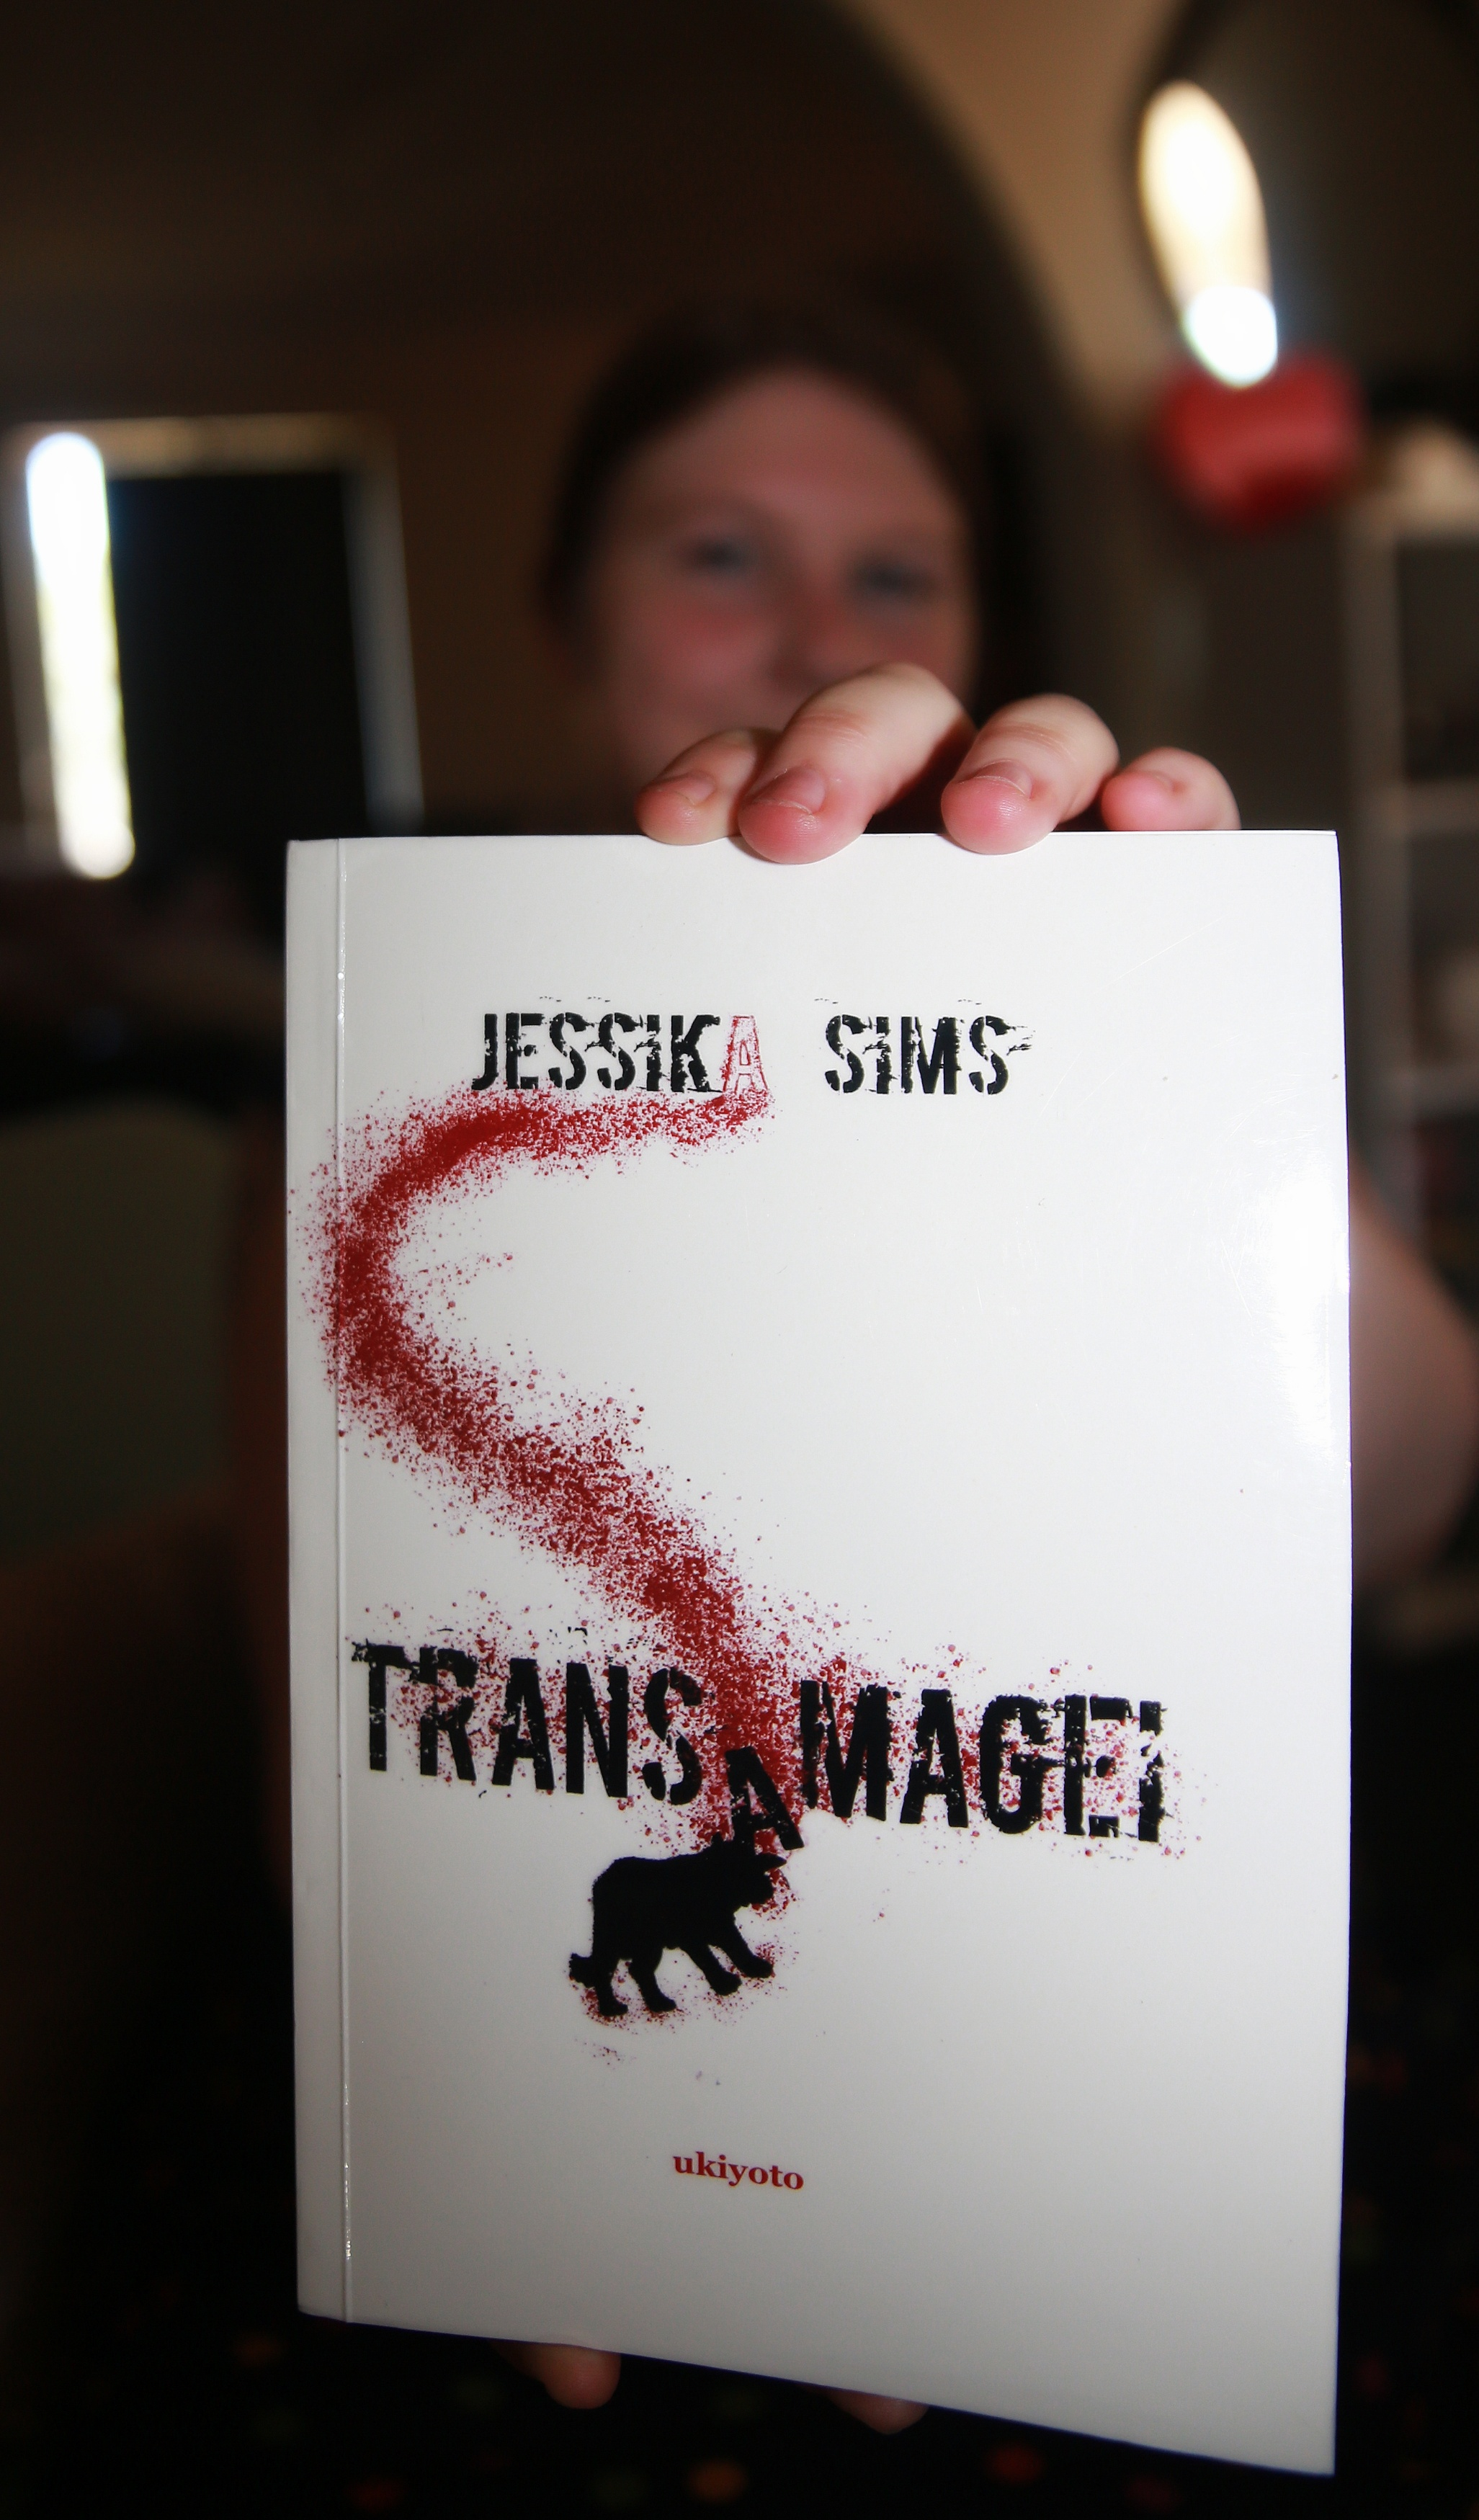 Release of horror title Transamagei by Jessika Sims in Halloween